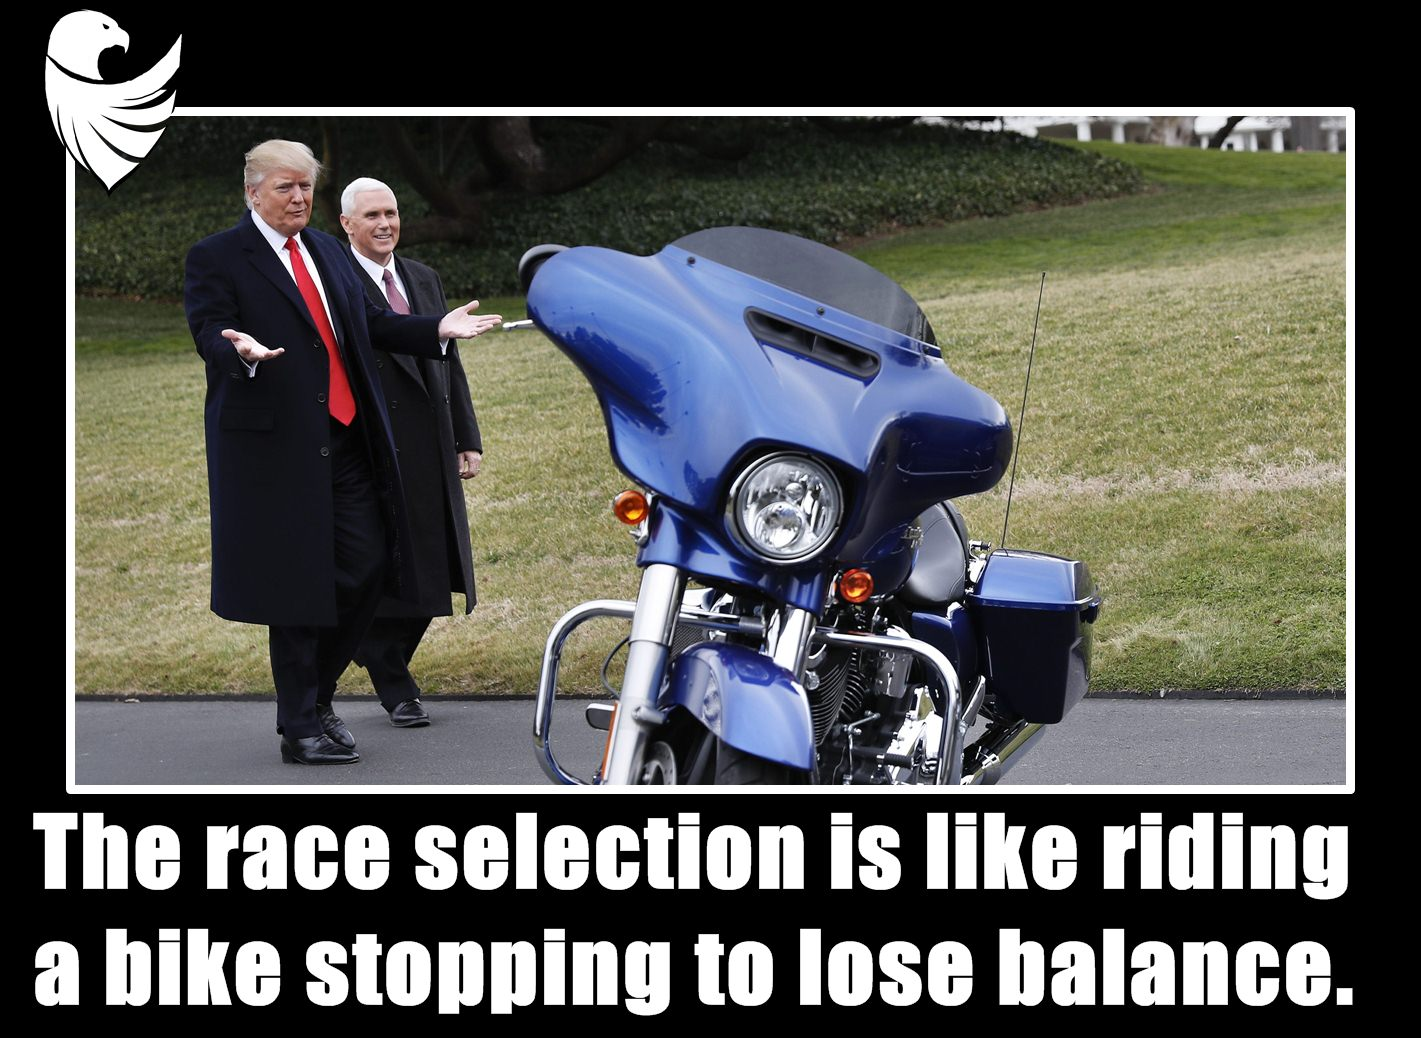 The race selection is like riding a bike stopping to lose balance.